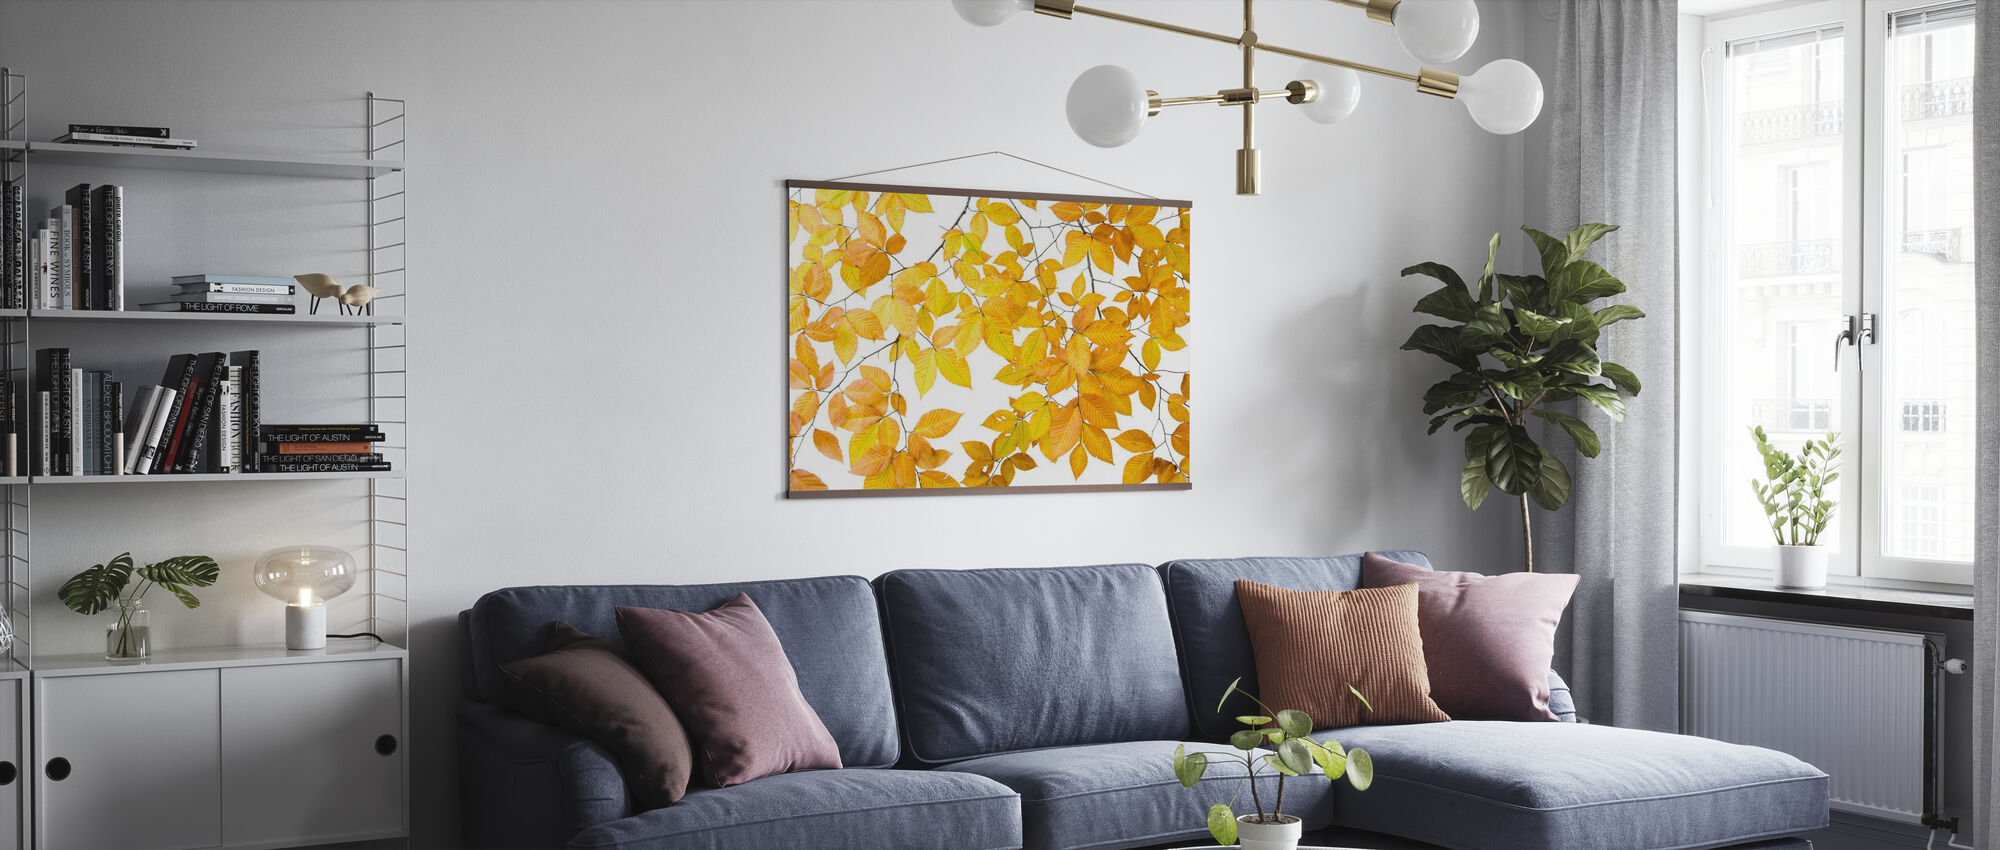 Yellow Leaves on White Background - Poster - Living Room